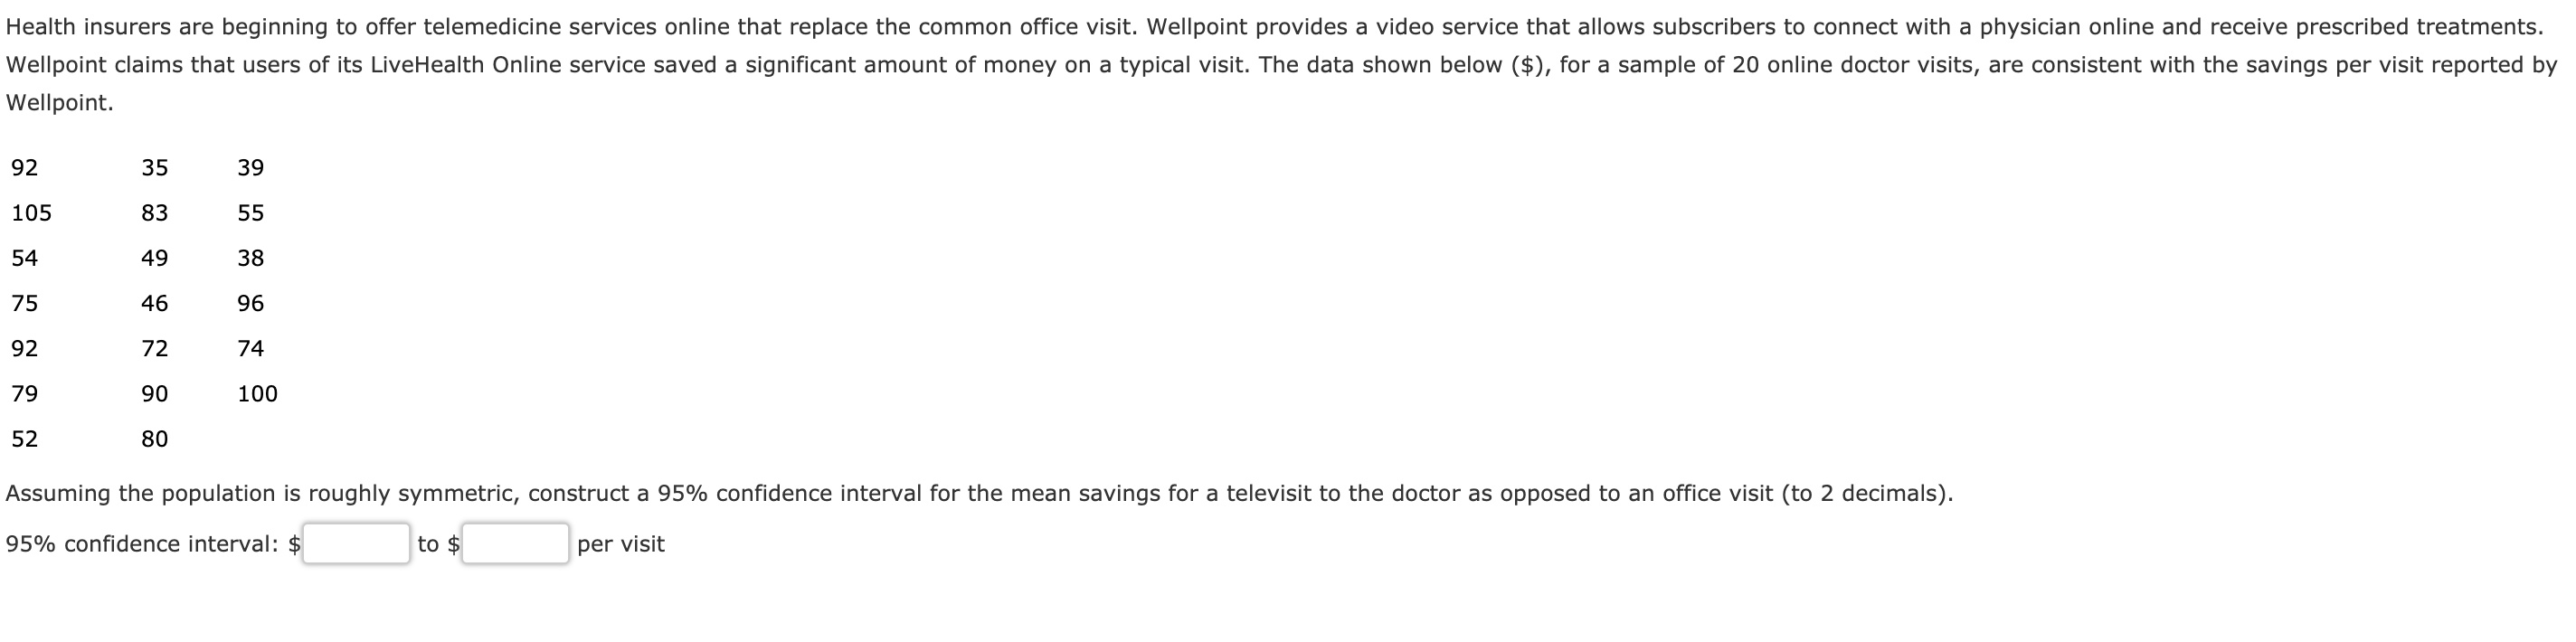 Health insurers are beginning to offer telemedicine services online that replace the common office visit. Wellpoint provides a video service that allows subscribers to connect with a physician online and receive prescribed treatments Wellpoint claims that users of its LiveHealth Online service saved a significant amount of money on a typical visit. The data shown below ($), for a sample of 20 online doctor visits, are consistent with the savings per visit reported by Wellpoint. 92 105 54 75 92 79 52 35 83 49 46 72 90 80 39 38 96 74 100 Assuming the population is roughly symmetric, construct a 95% confidence interval for the mean savings for a televisit to the doctor as opposed to an office visit (to 2 decimals) 95% confidence interval: $ to $ per visit